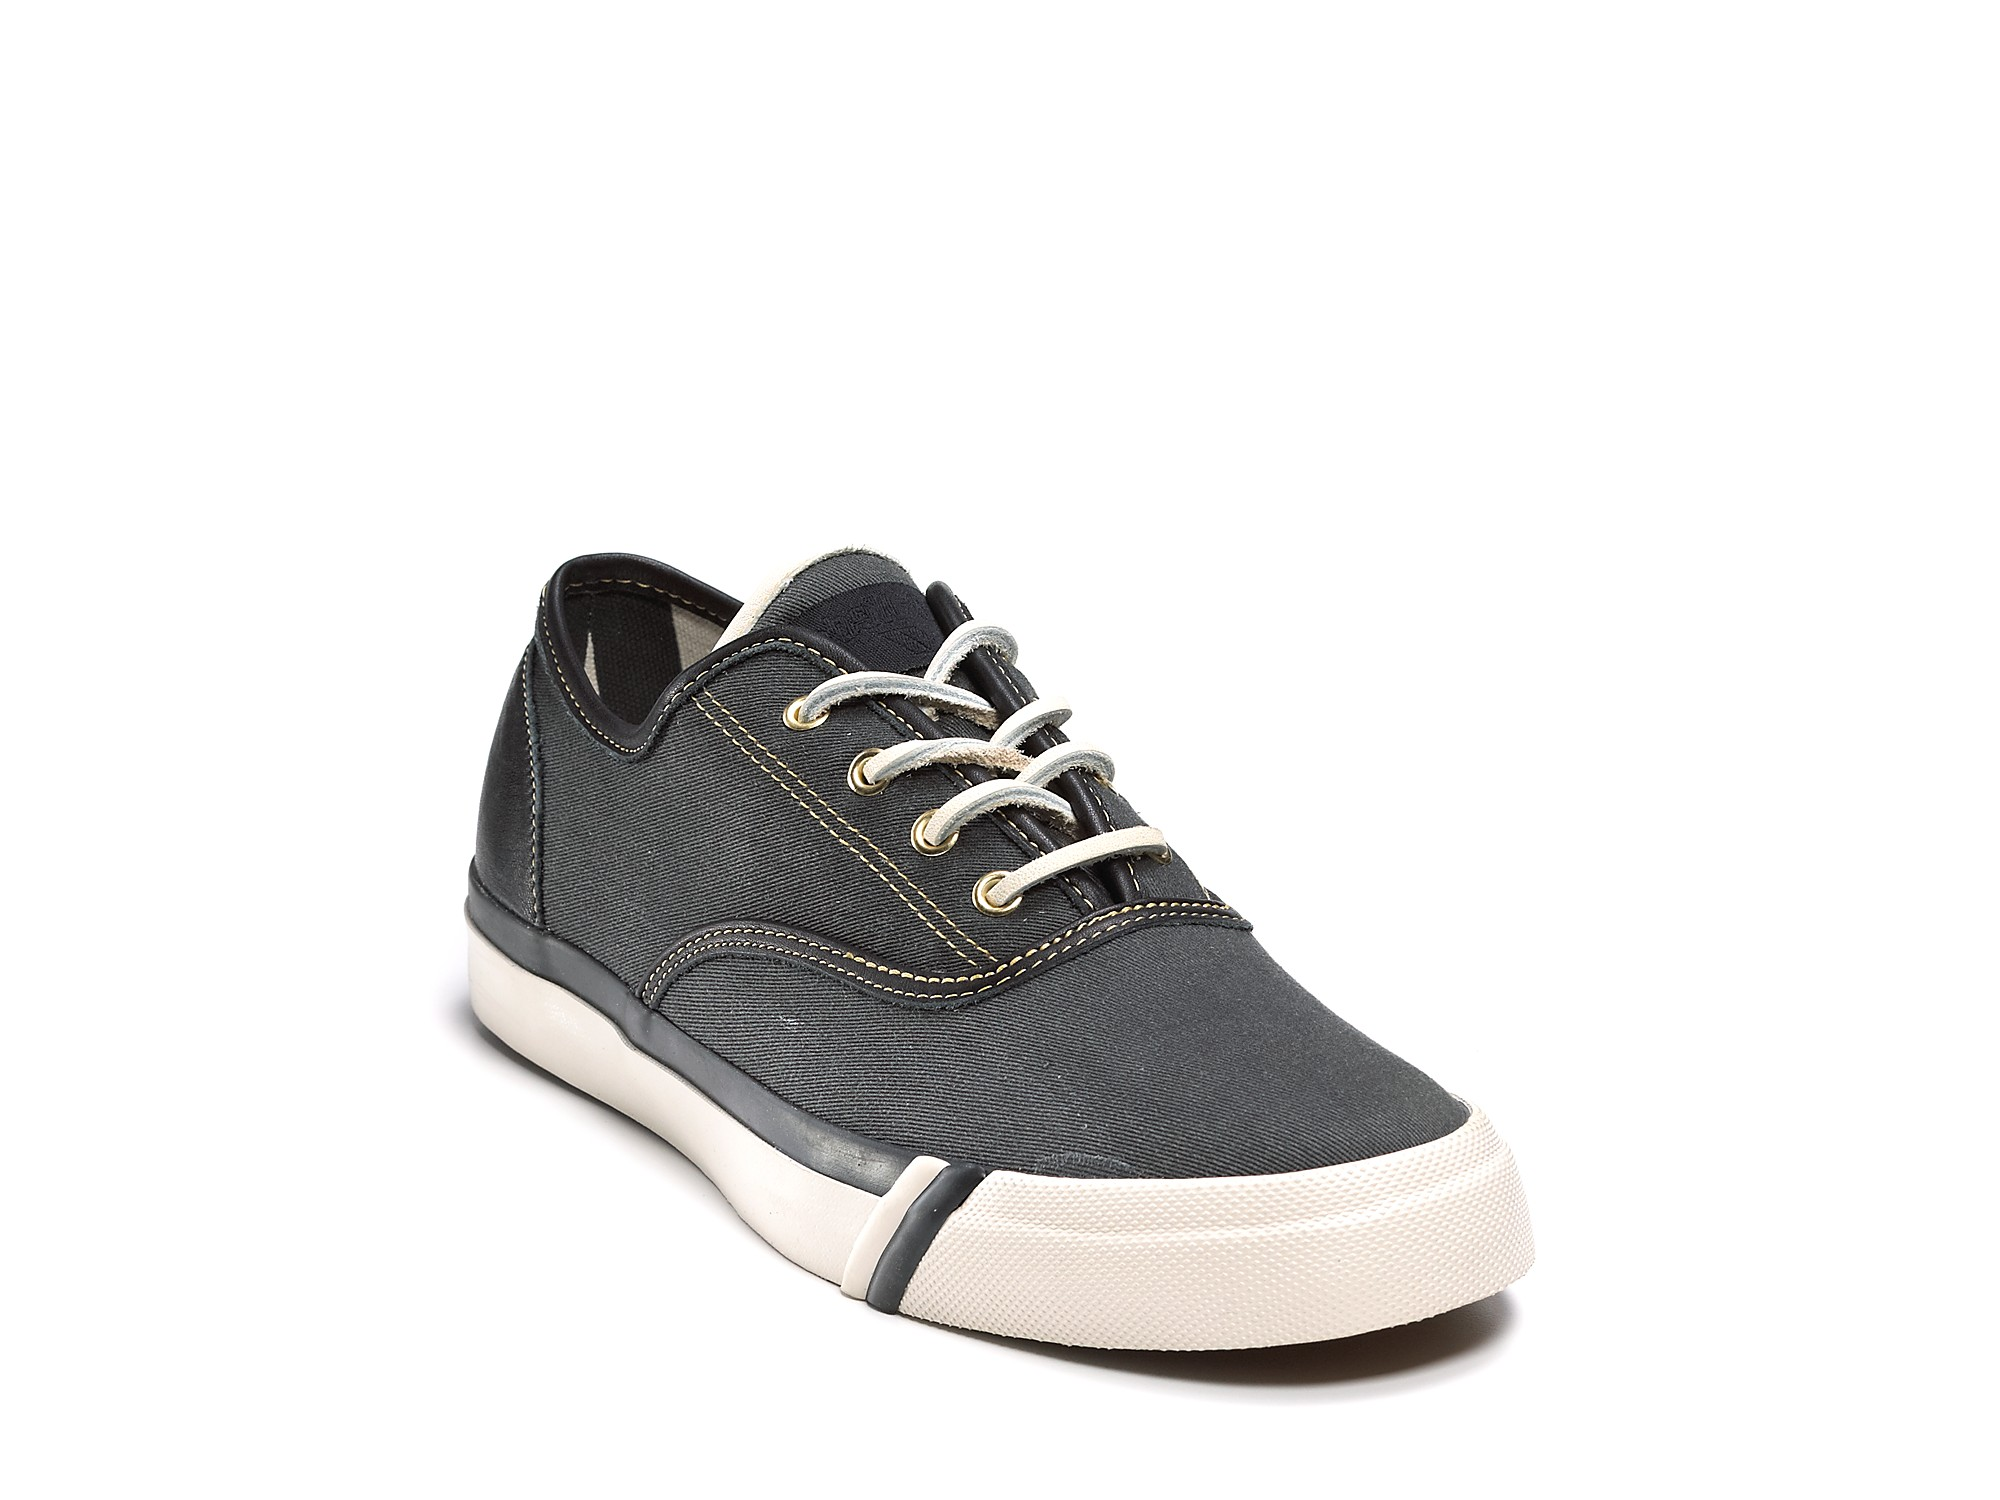 59169d81e6bc0 Lyst - Ash Pro-keds Royal Cvo Washed Twill leather Sneaker in Black ...